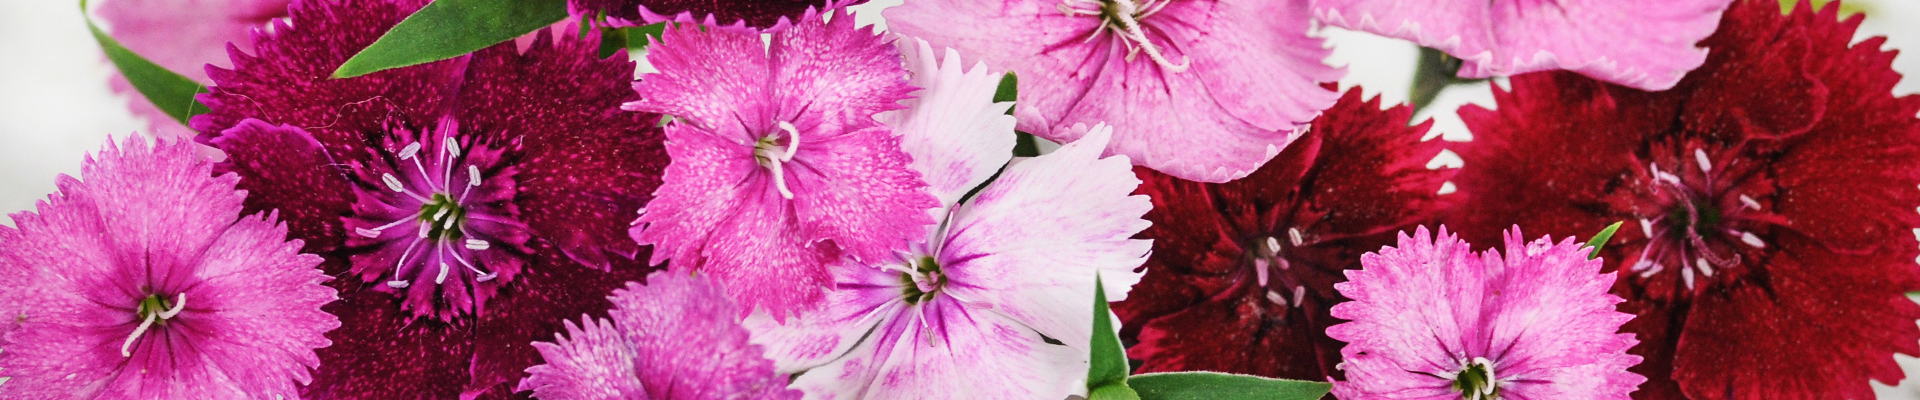 Dianthus-Carnations